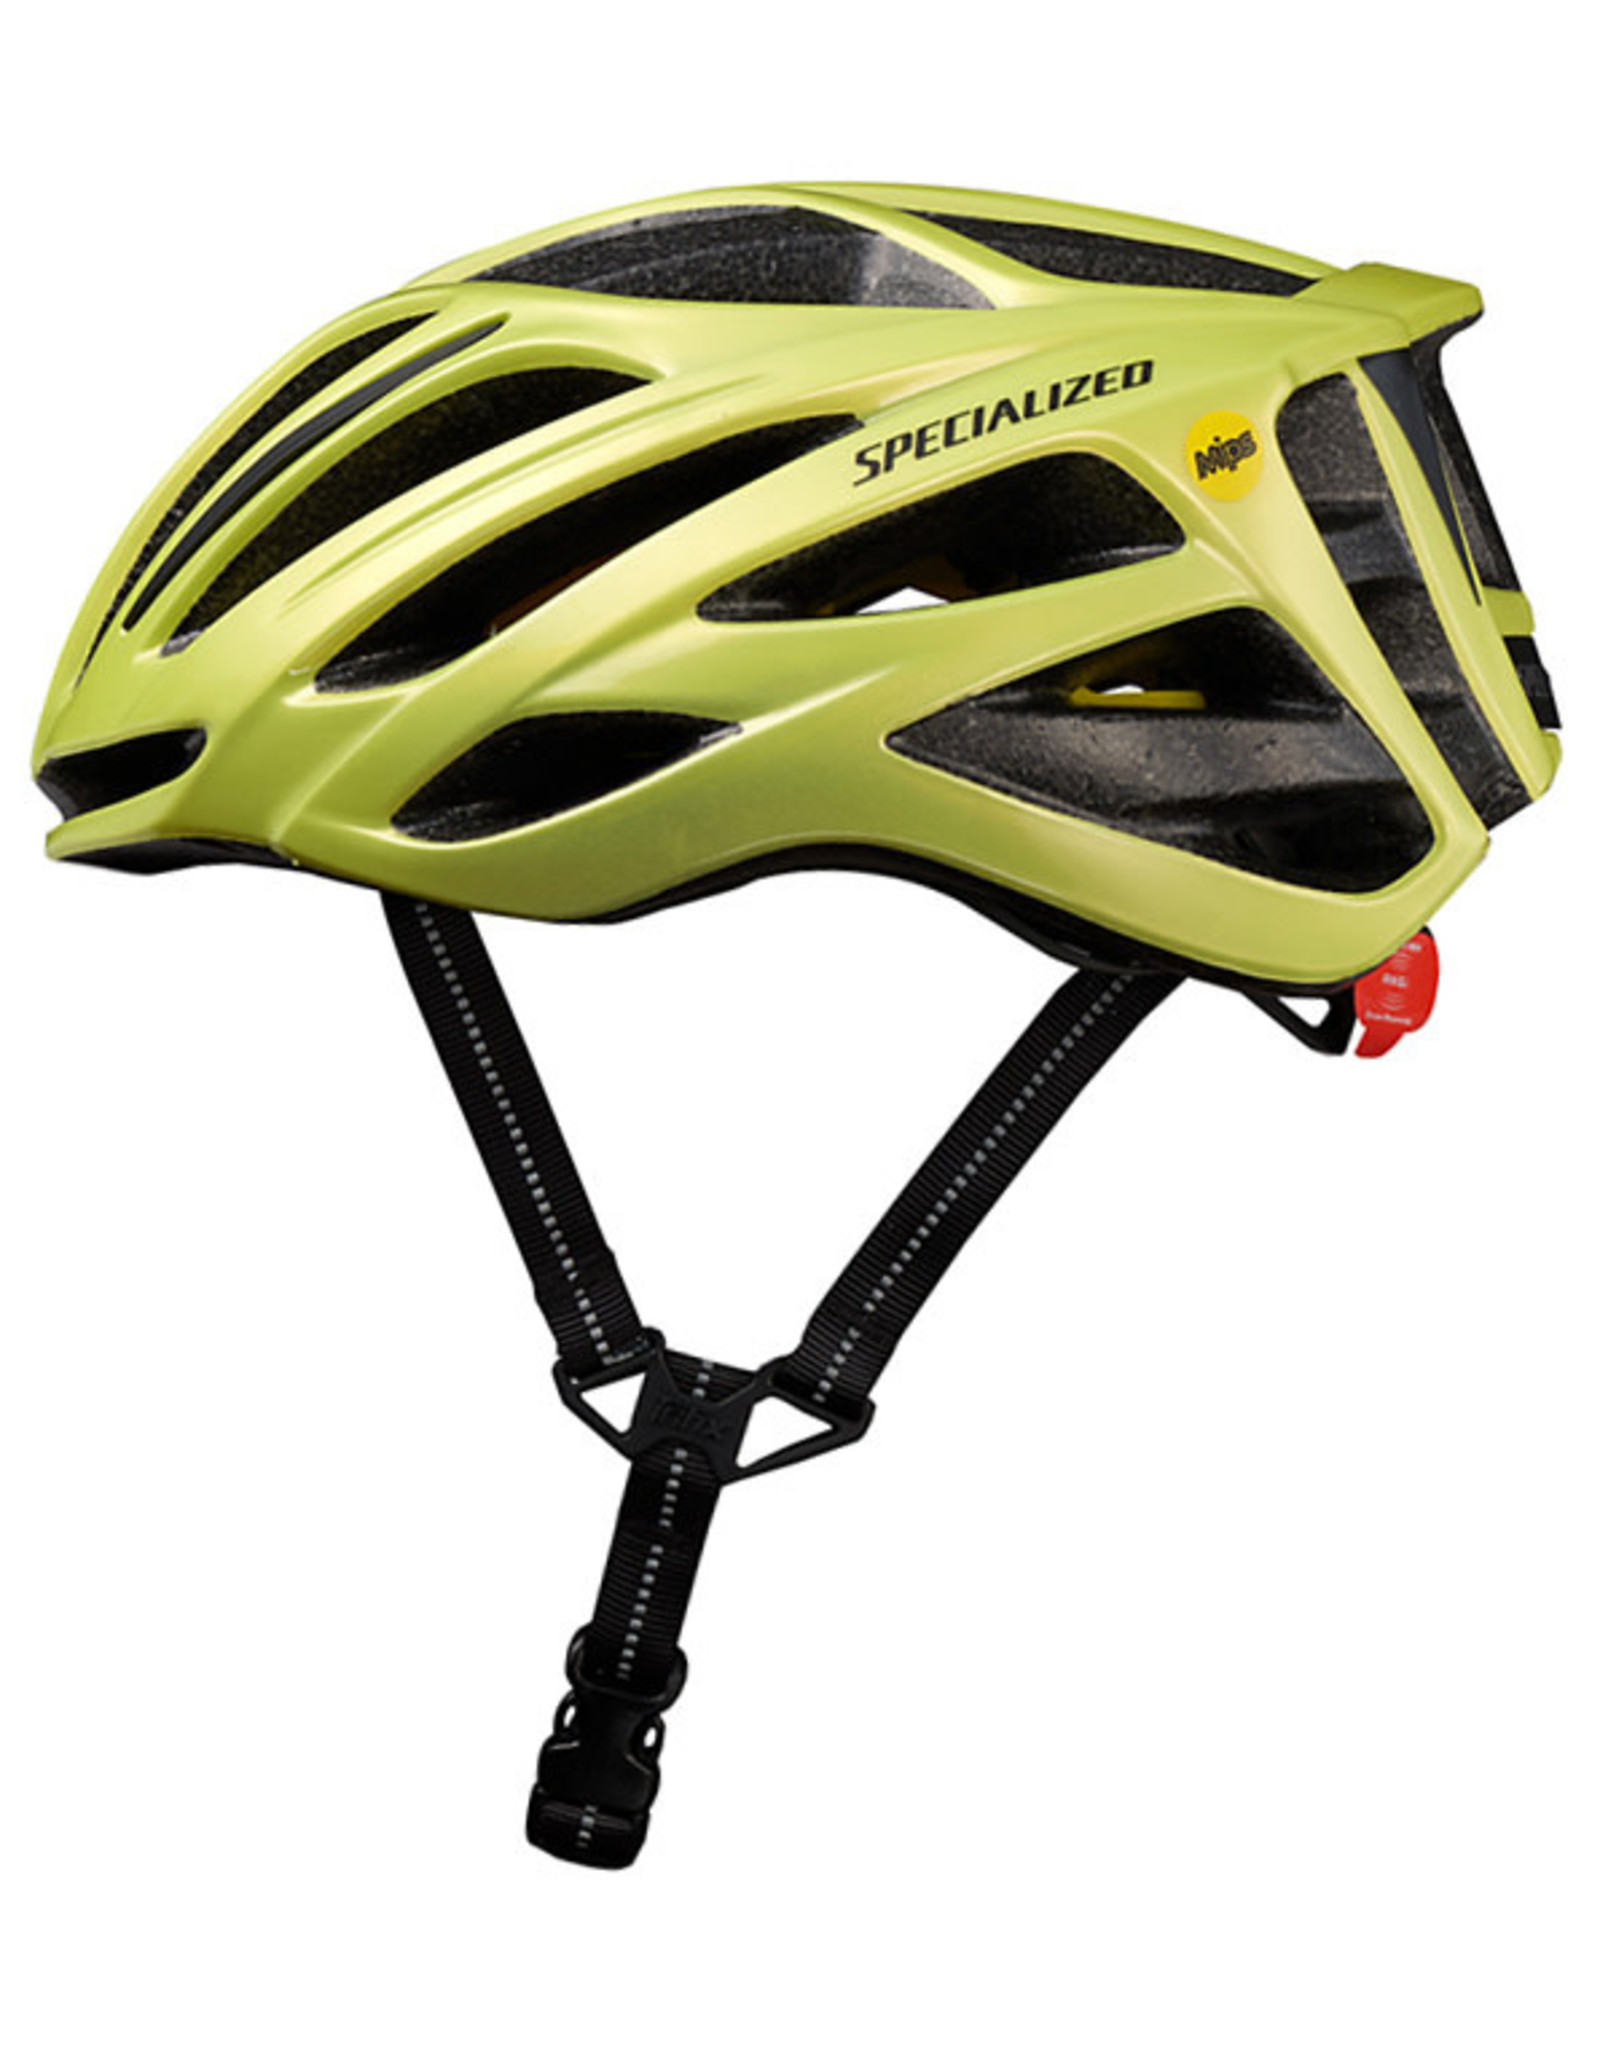 Specialized Specialized Echelon II MIPS Helmet - Ion Yellow/Black - Medium